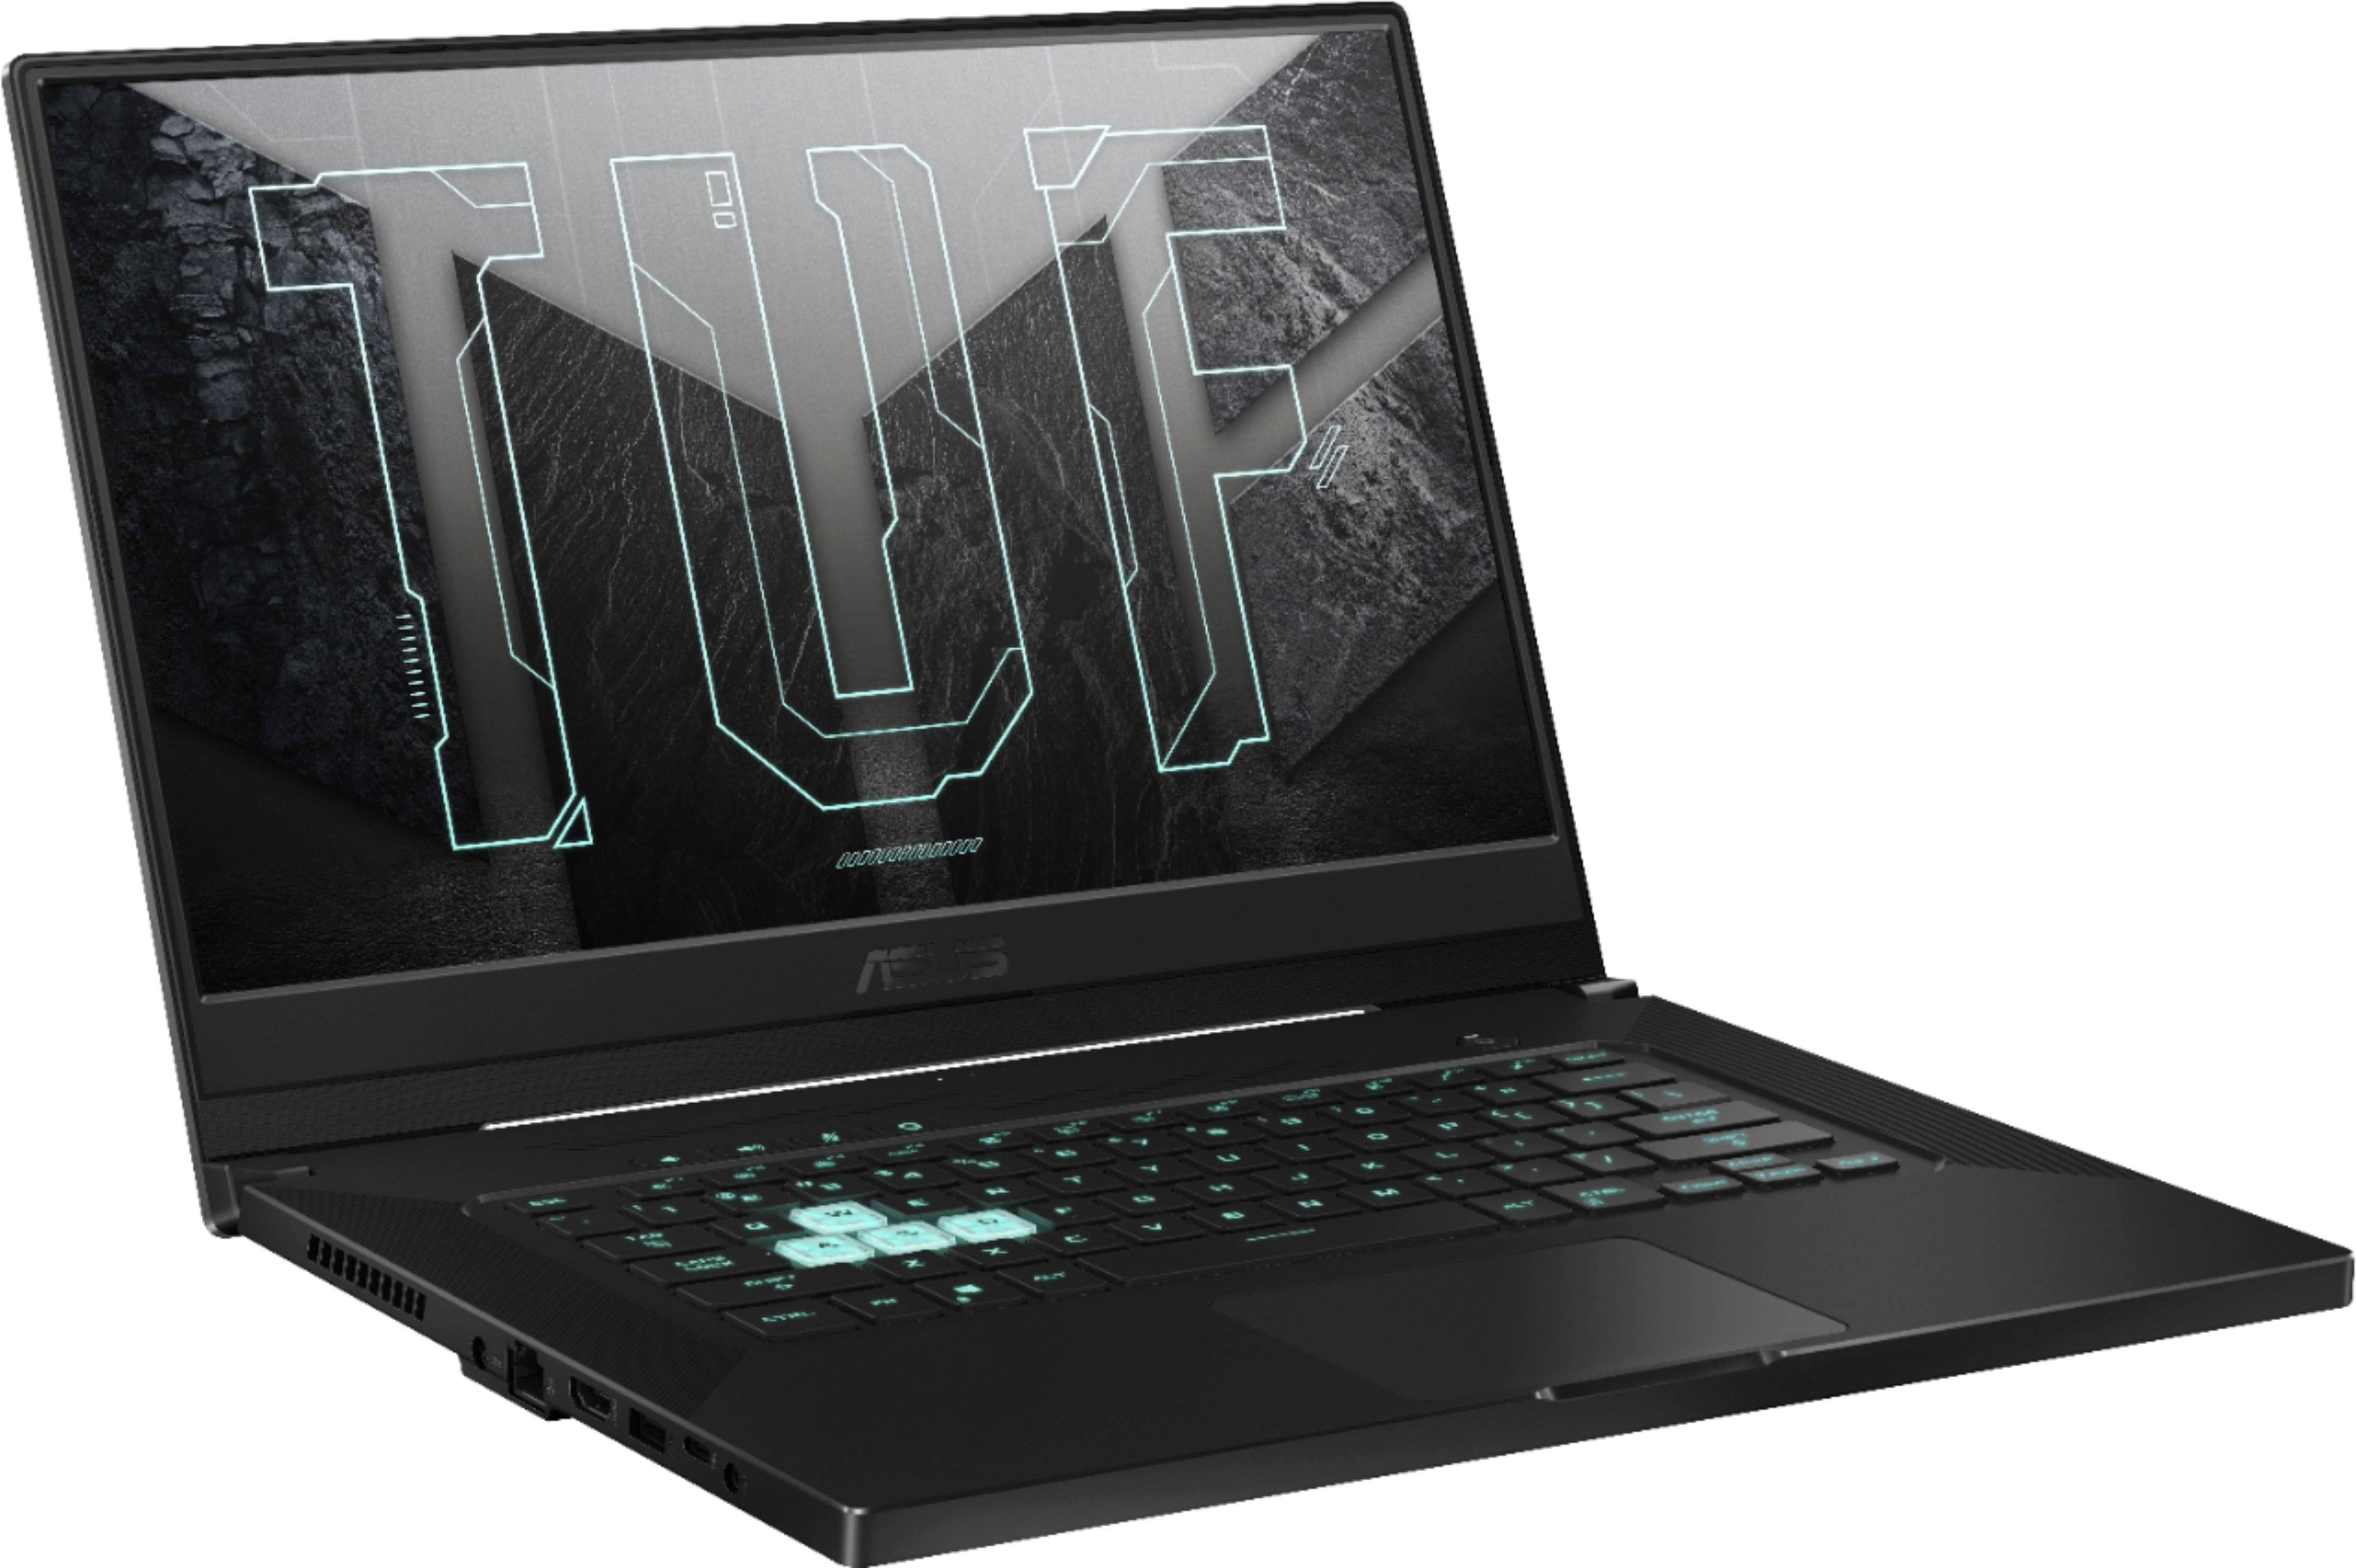 "Best Buy: ASUS - TUF 15.6"" Gaming Laptop - Intel 11th Gen i7 - 16GB Memory - NVIDIA GeForce RTX 3060 - 512GB SSD - Eclipse Grey - Eclipse Grey $1099.99"